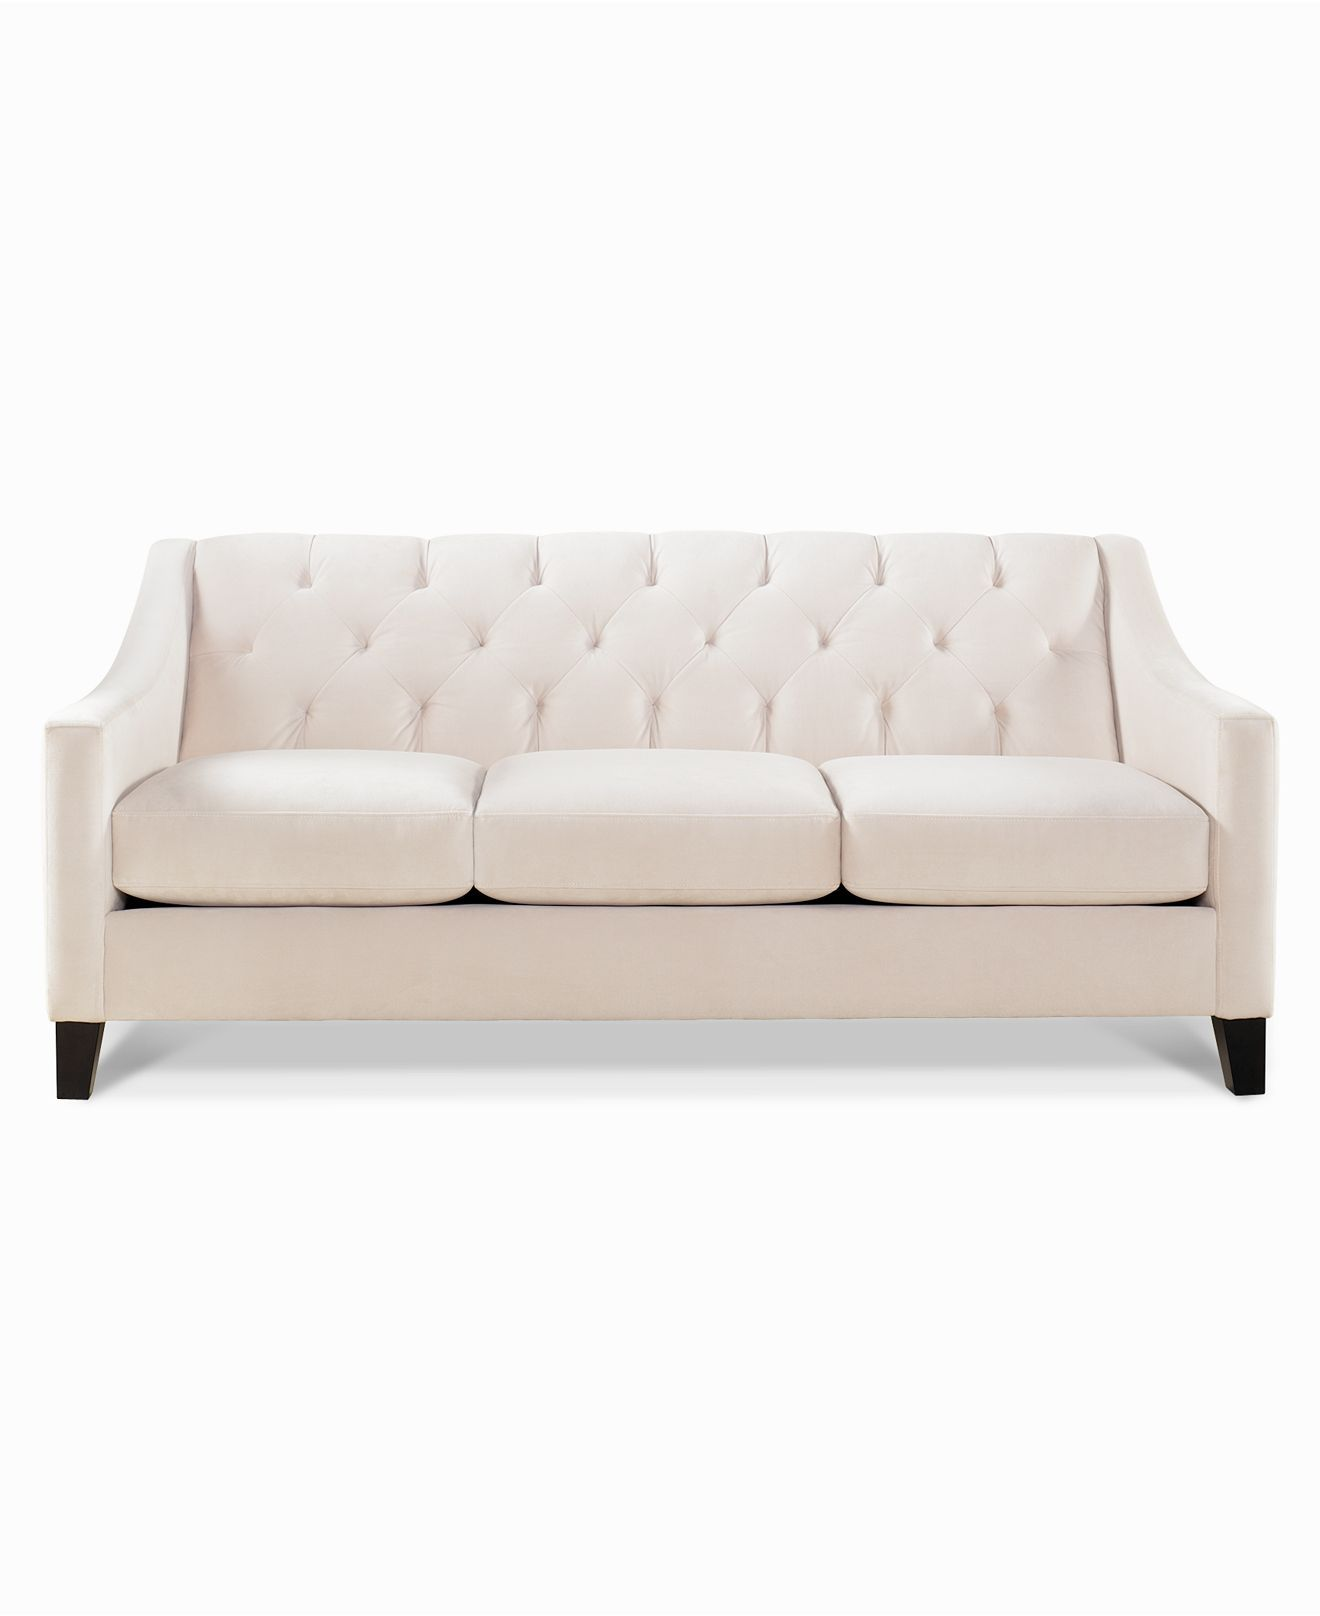 Chloe Metro Living Sofa - classic button-tufting and a sloped-arm design add